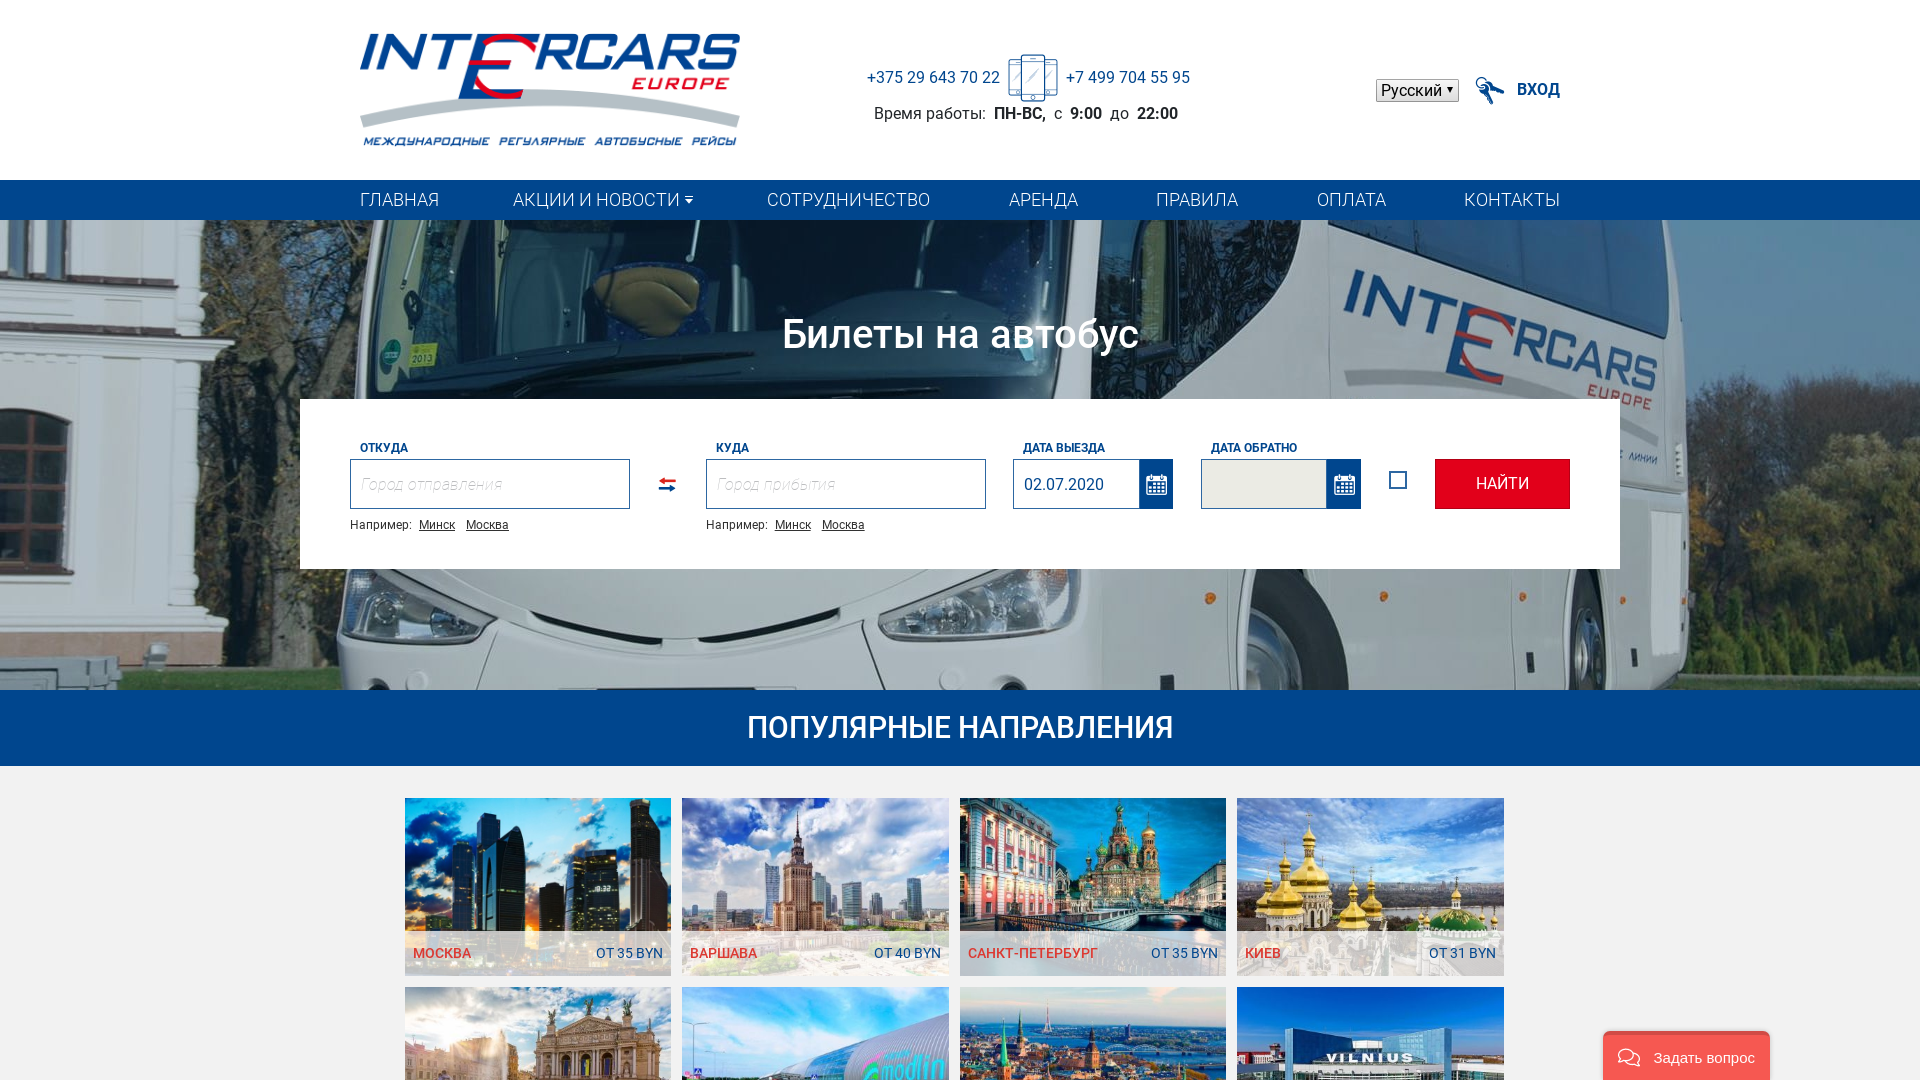 Intercars-tickets Many GEOs website